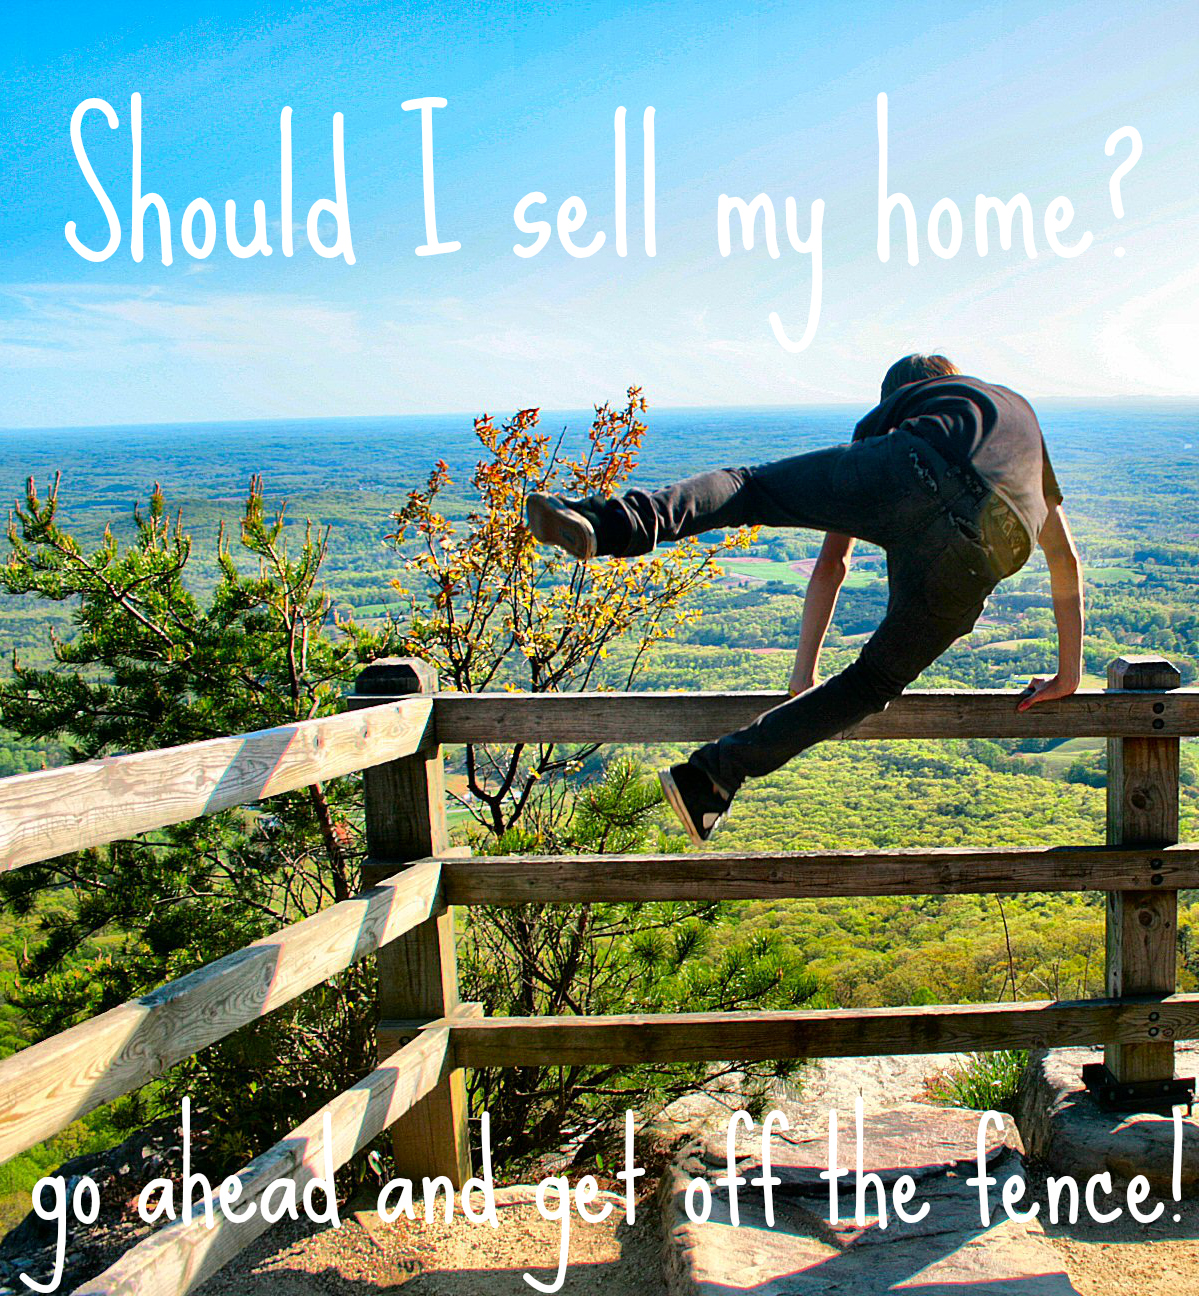 Should I sell my home in South Florida?